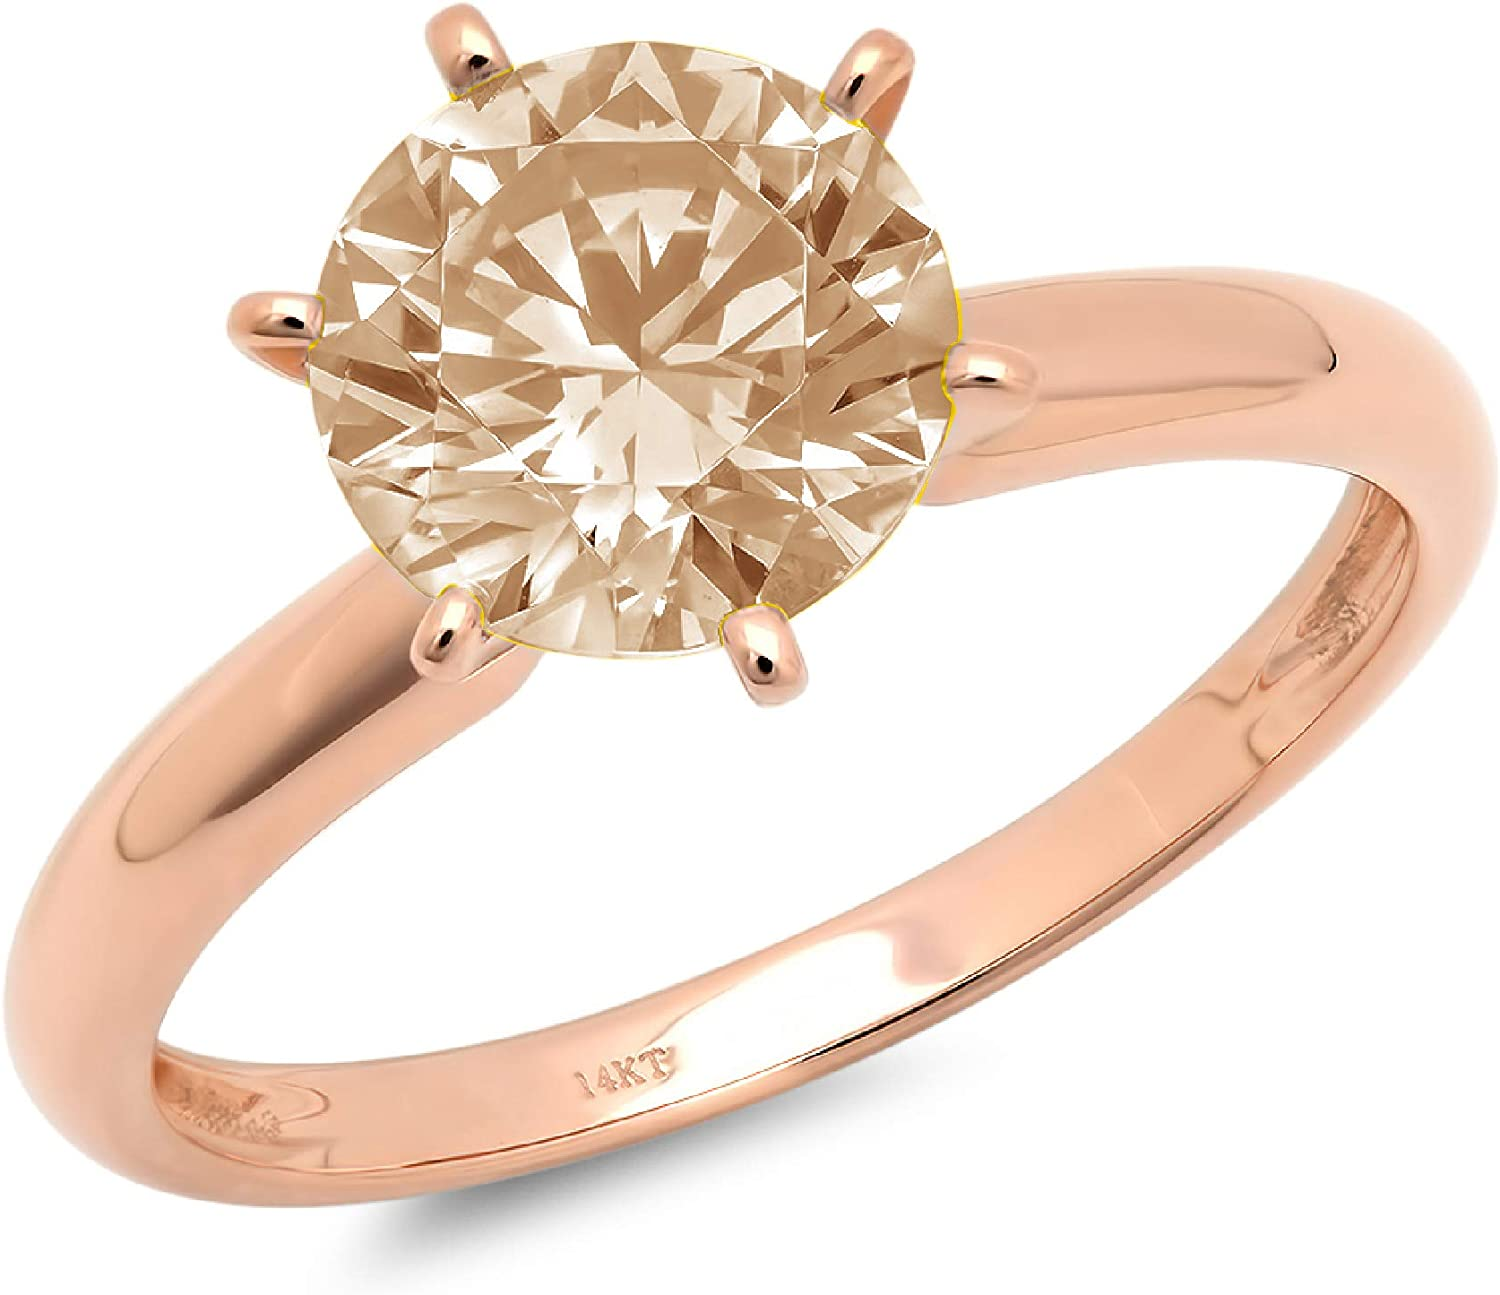 1.95ct Brilliant Round Cut Solitaire Brown Champagne Simulated Diamond CZ Ideal VVS1 D 6-Prong Classic Designer Statement Ring in Solid Real 14k rose Gold for Women